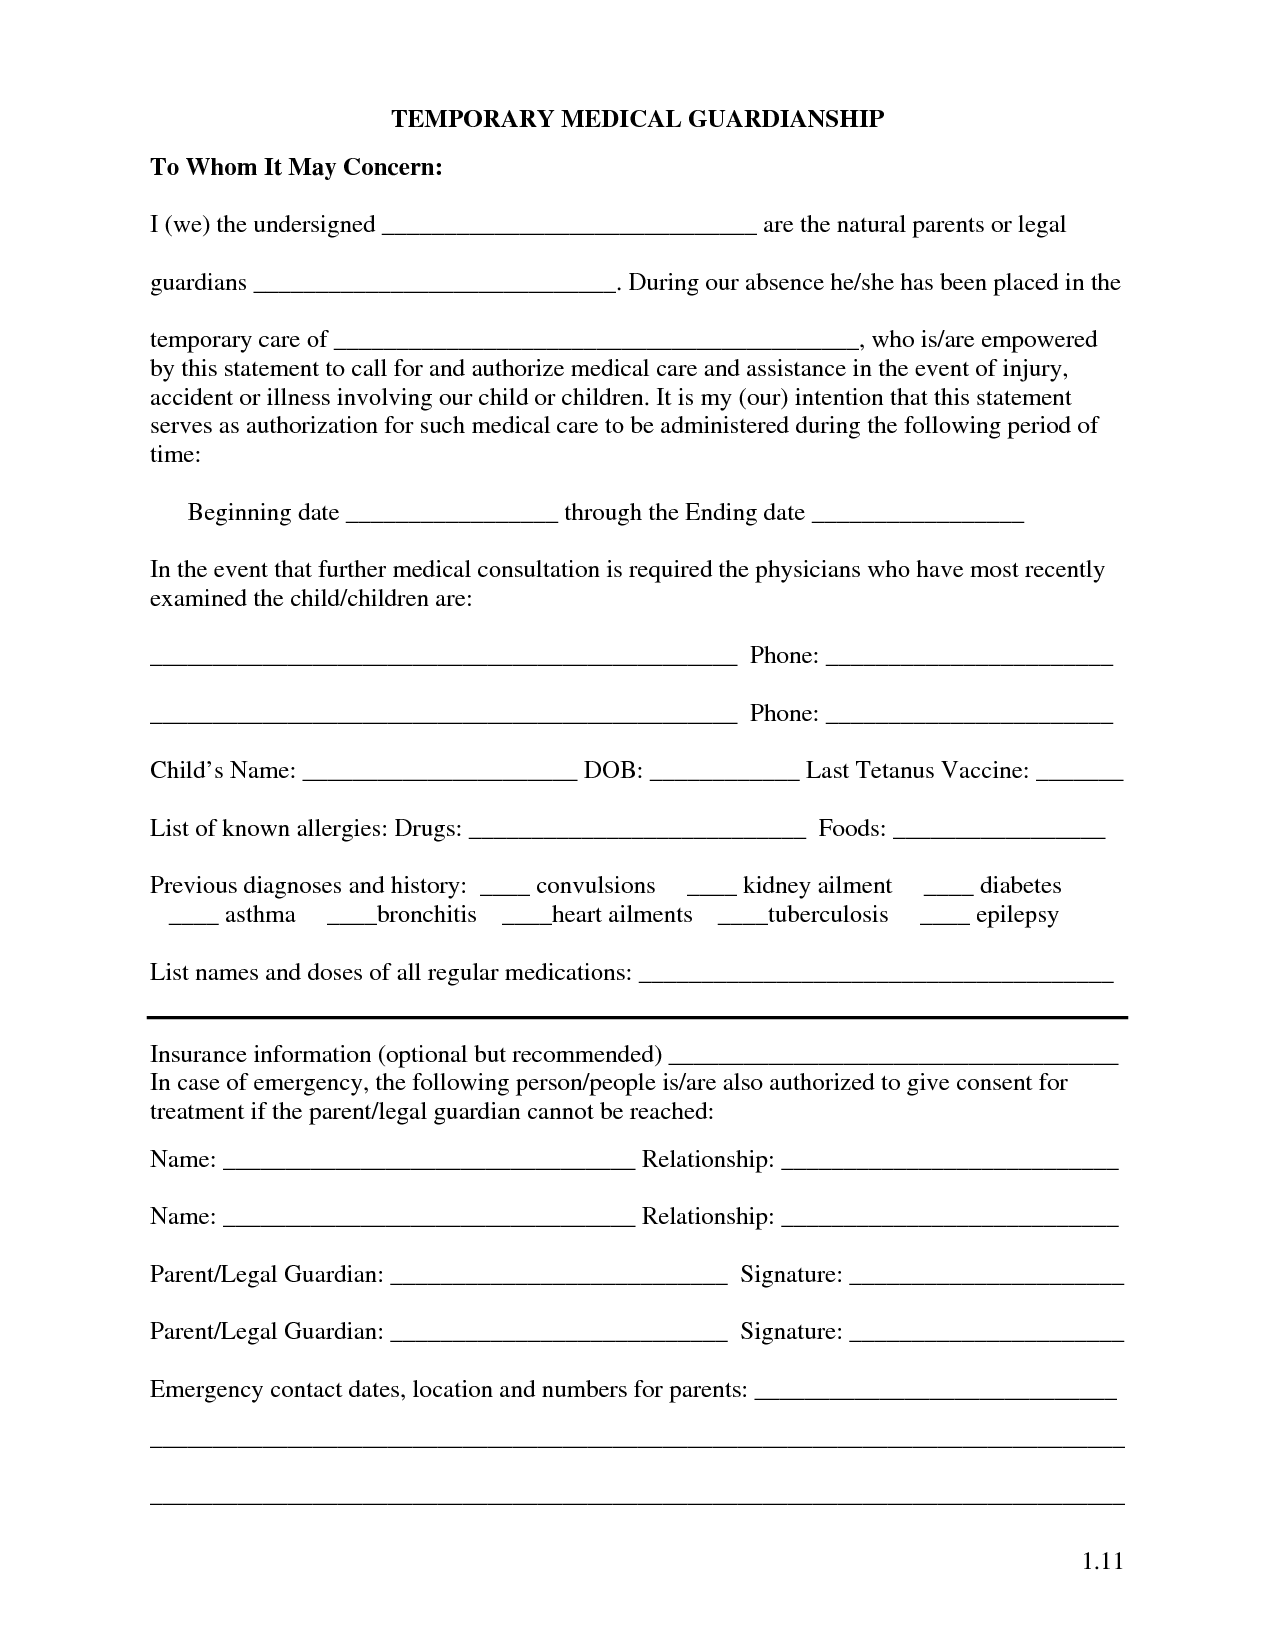 photo regarding Free Printable Temporary Guardianship Form known as No cost Printable Non permanent Guardianship Types kinds Youngster